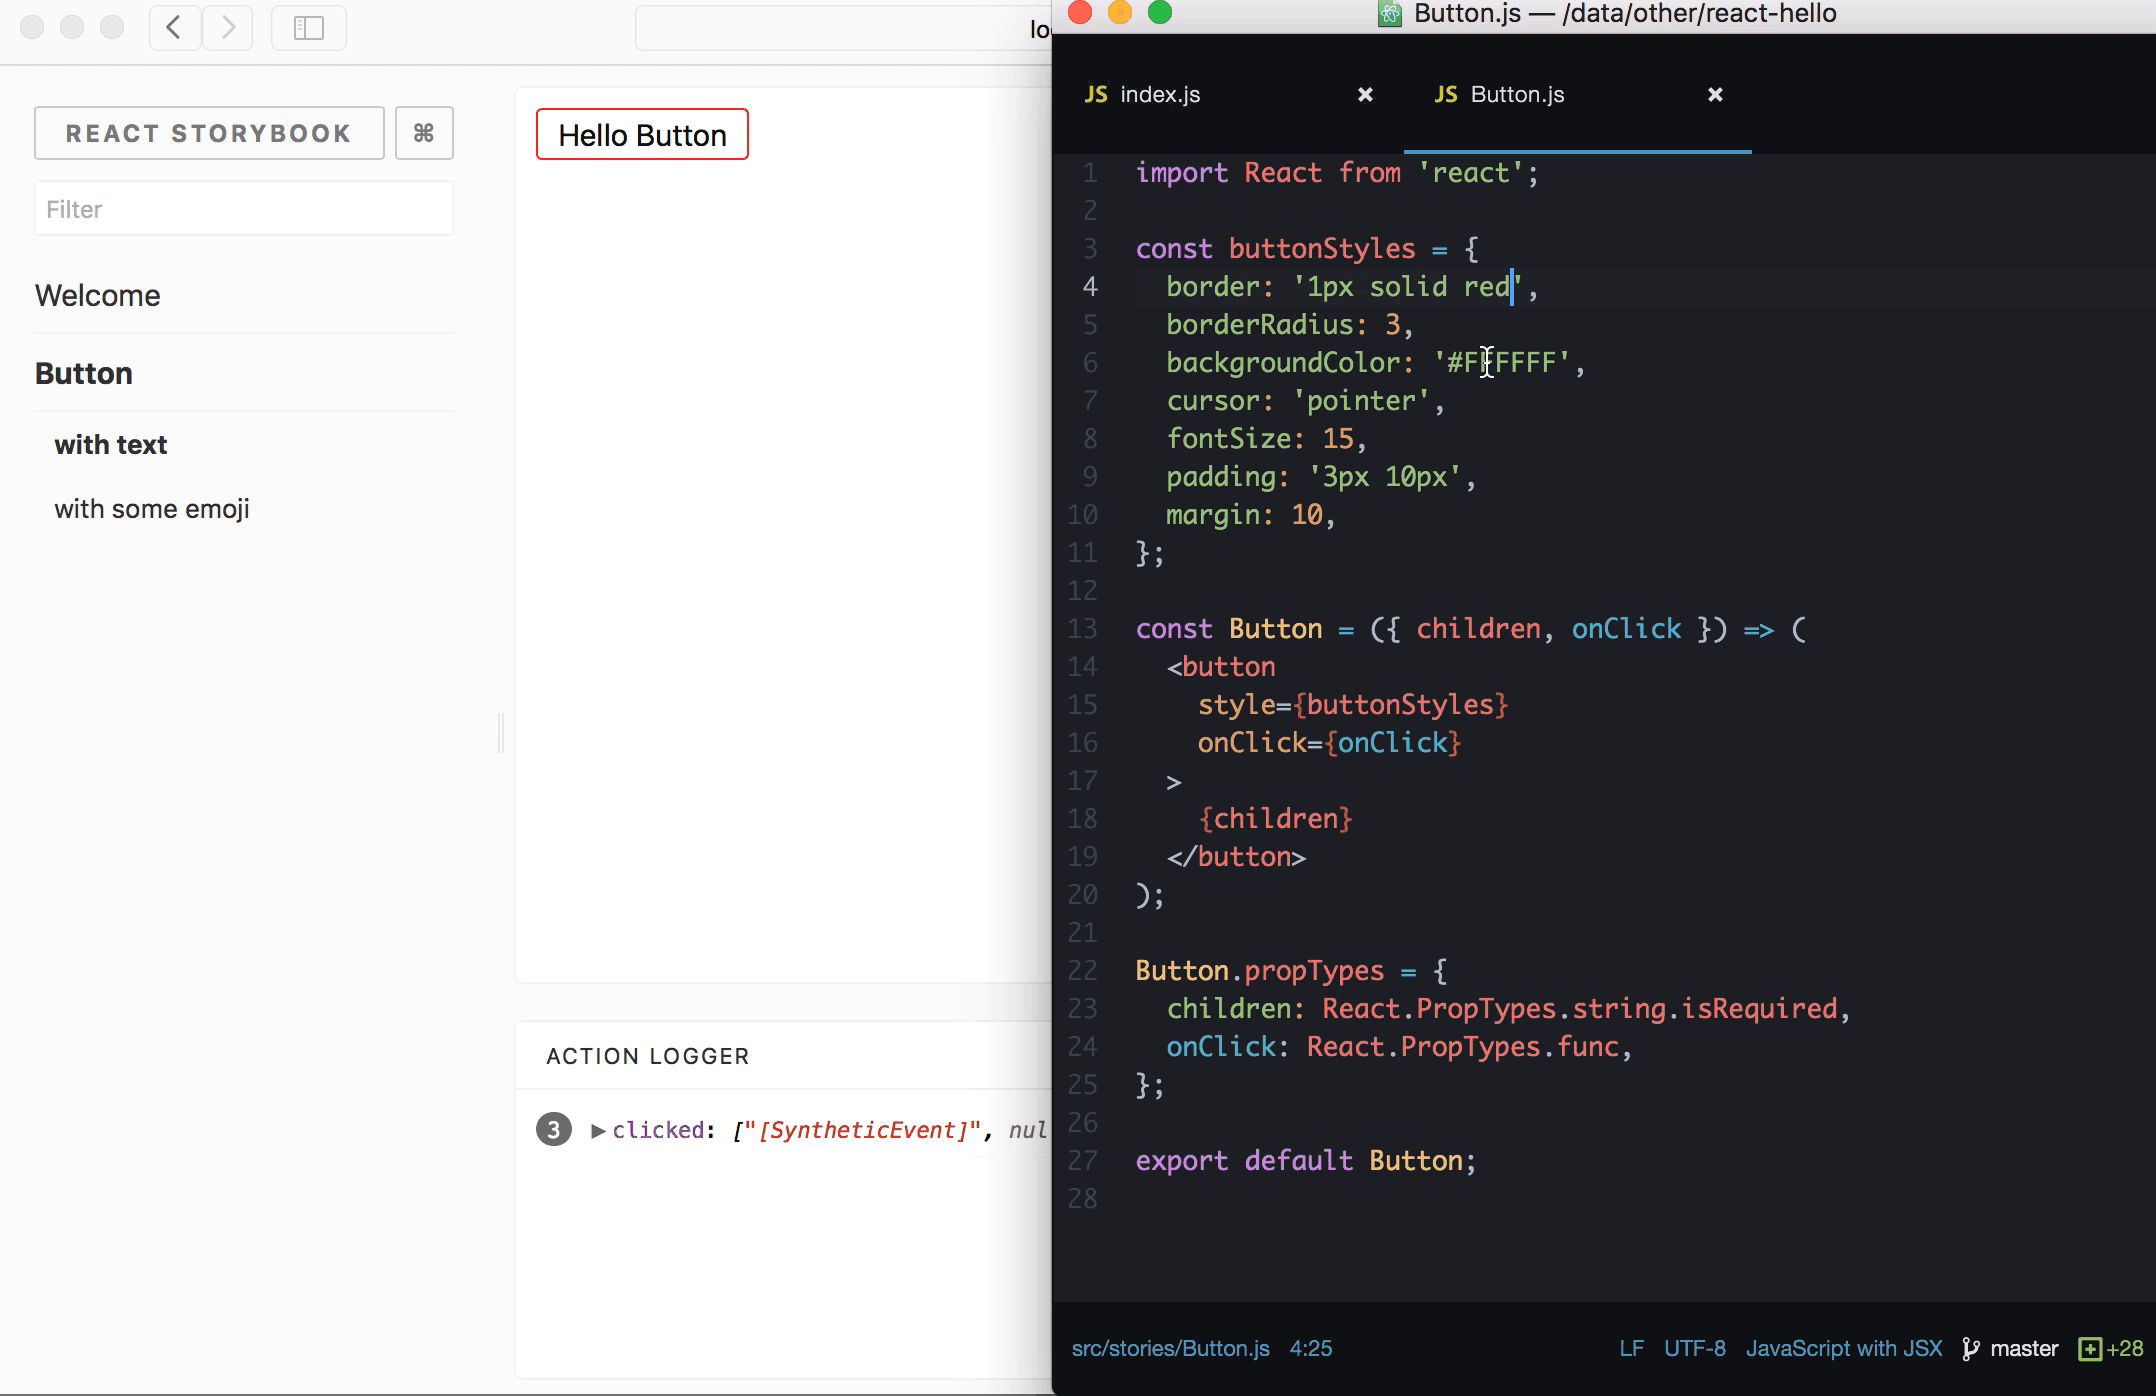 React Storybook component preview